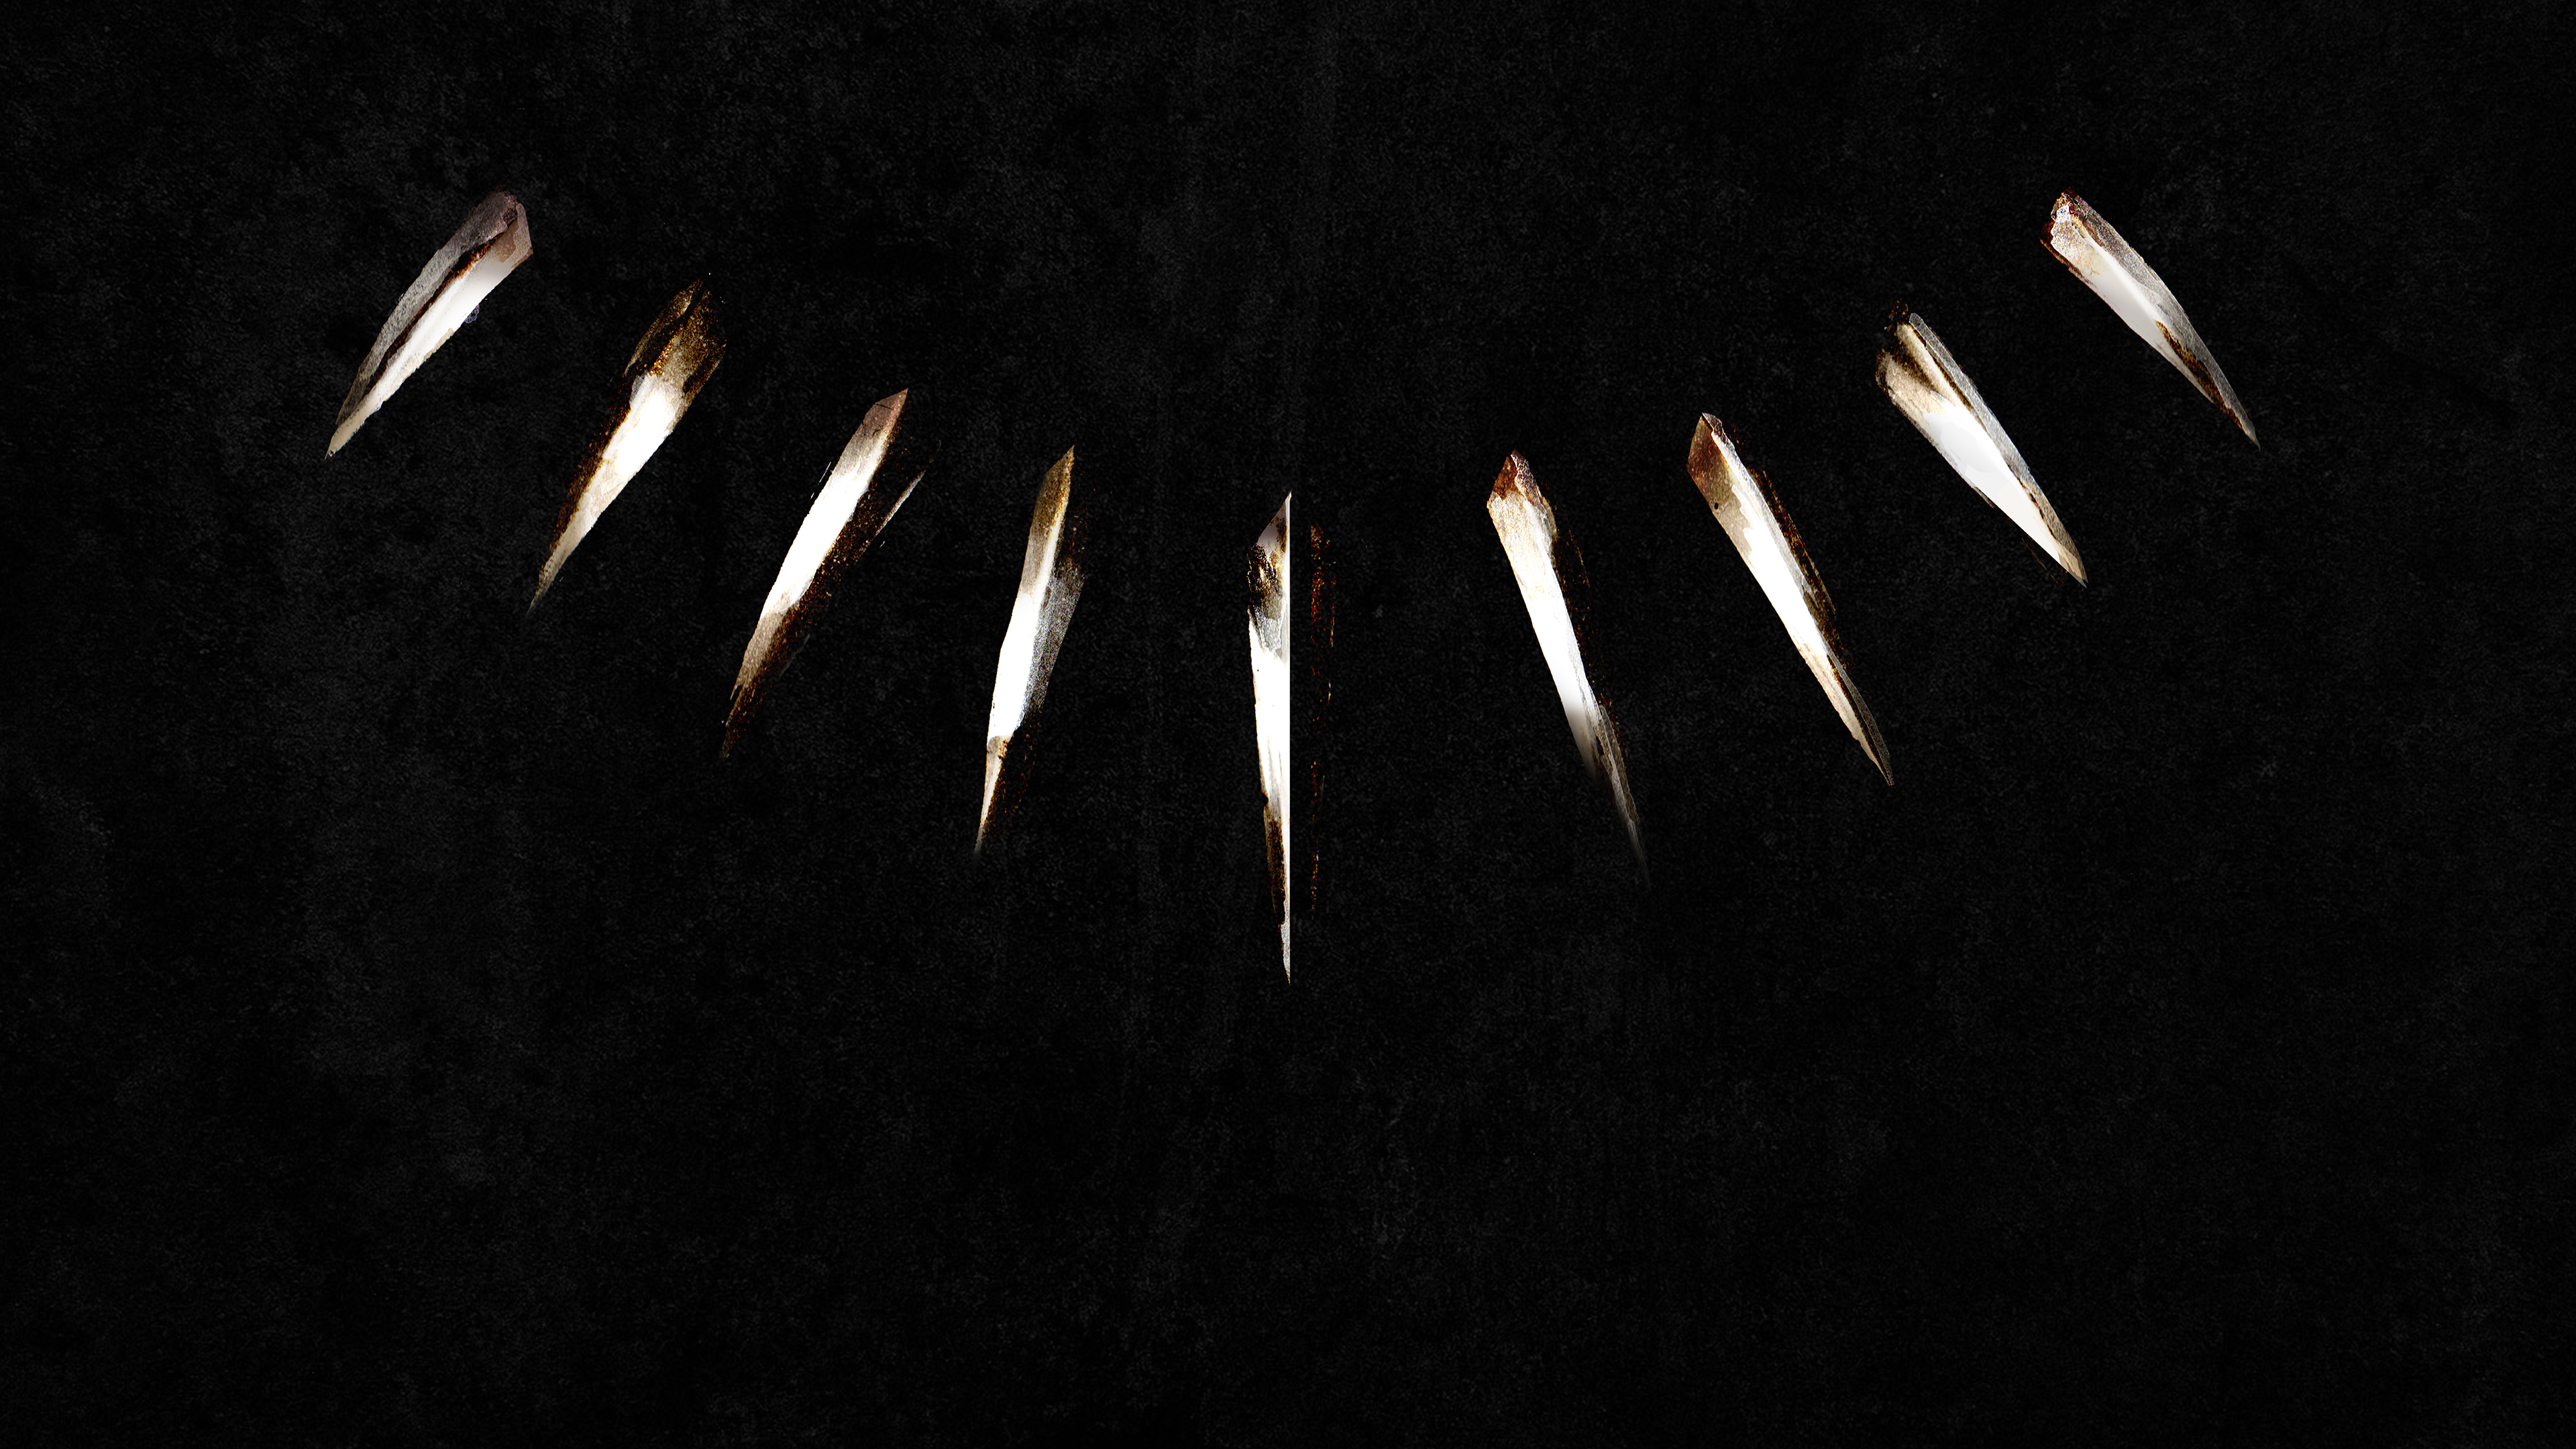 Black Panther the Album 4K wallpaper mobile wp Imgur link in 3840x2160